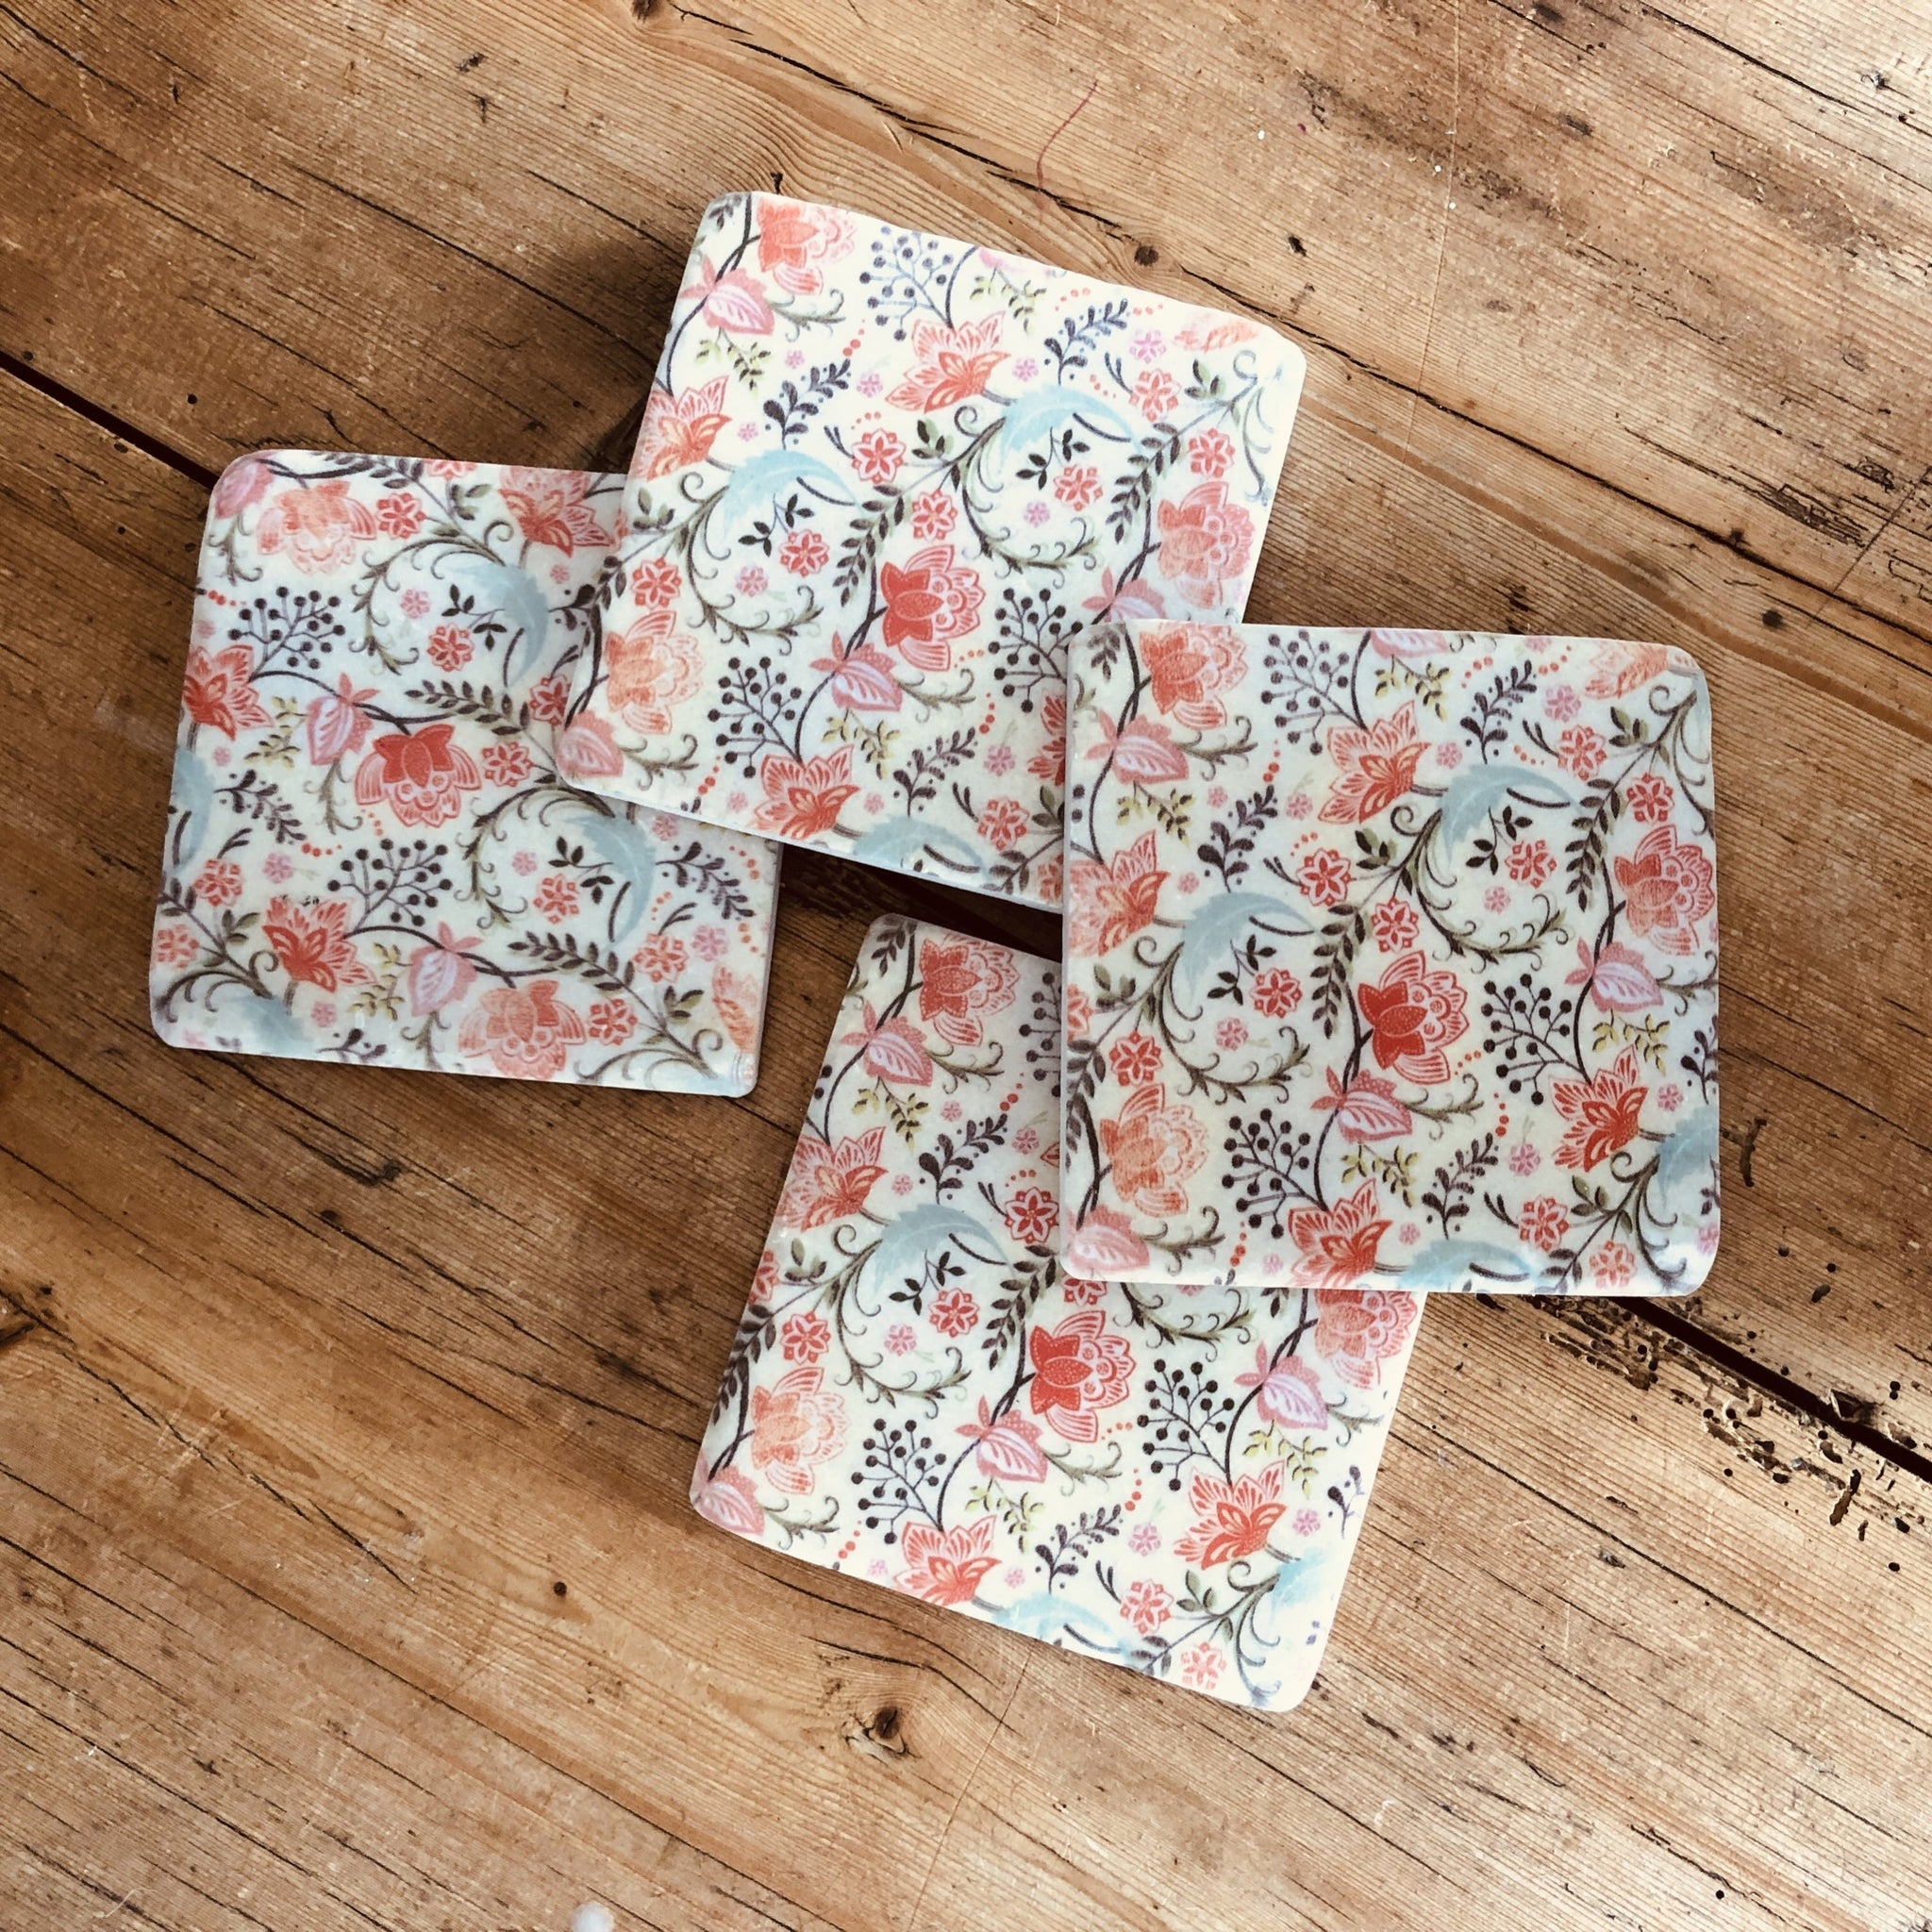 Floral coasters - Dales Country Interiors